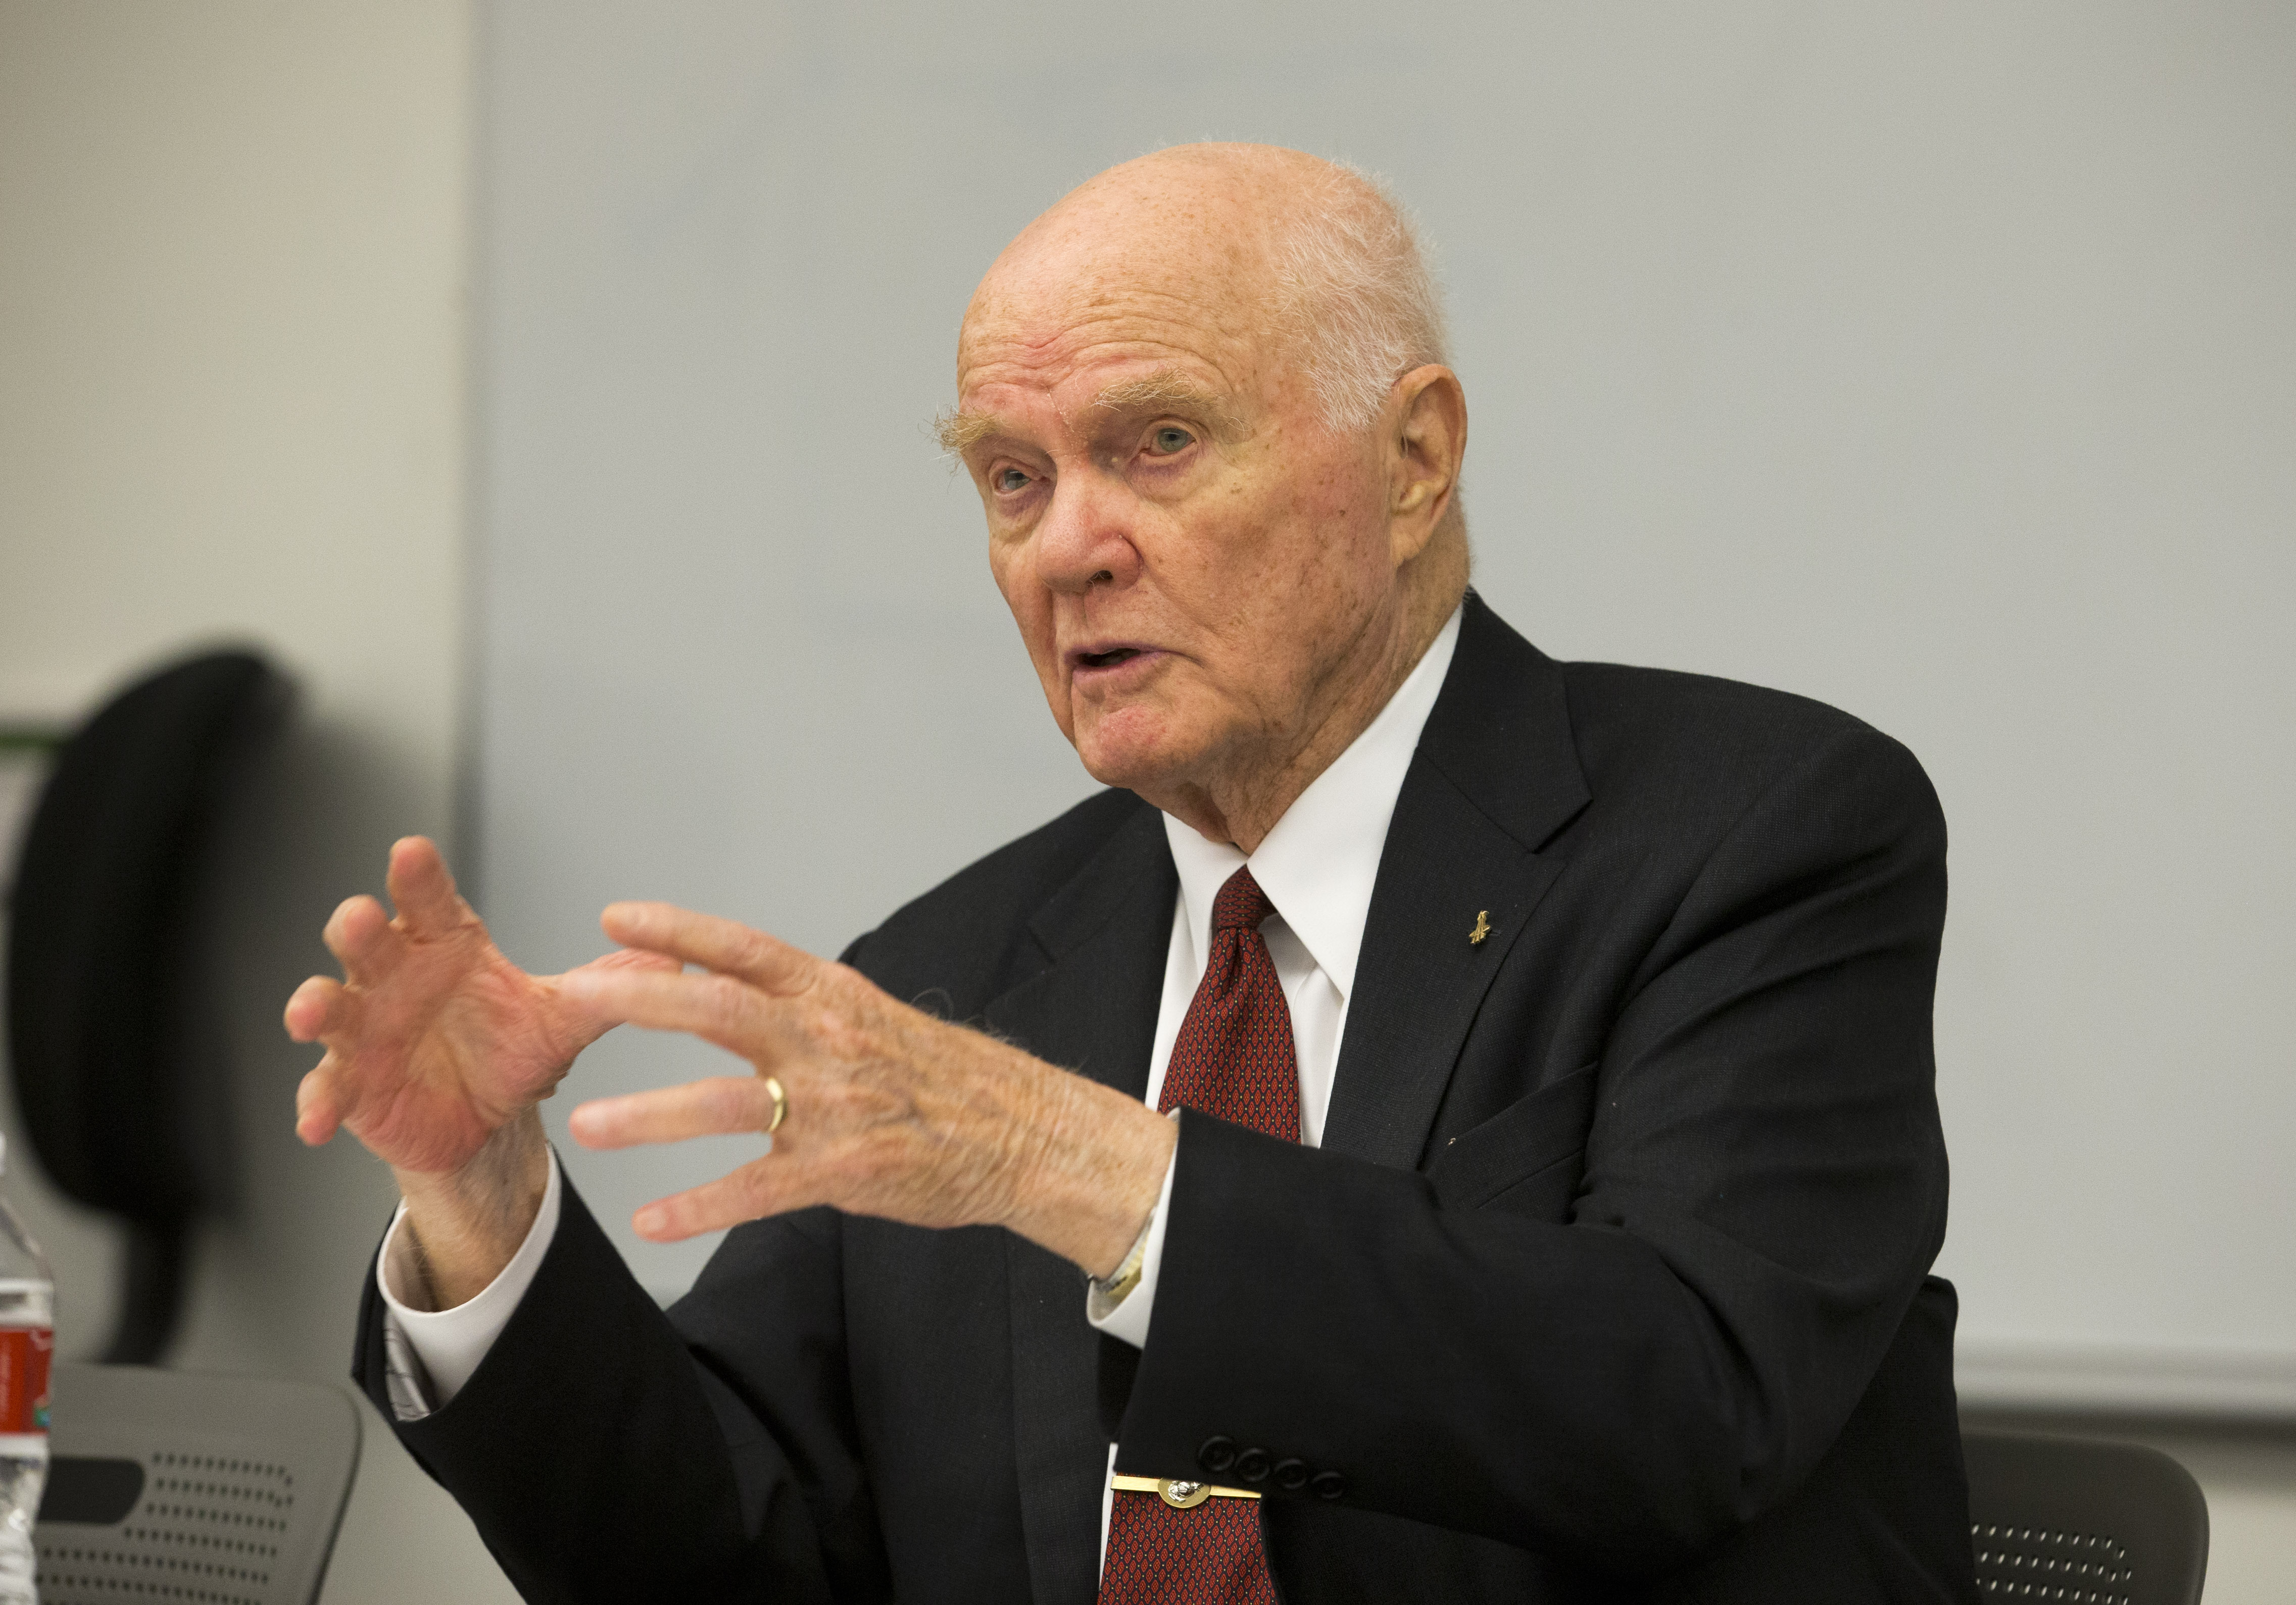 The Honorable John Glenn